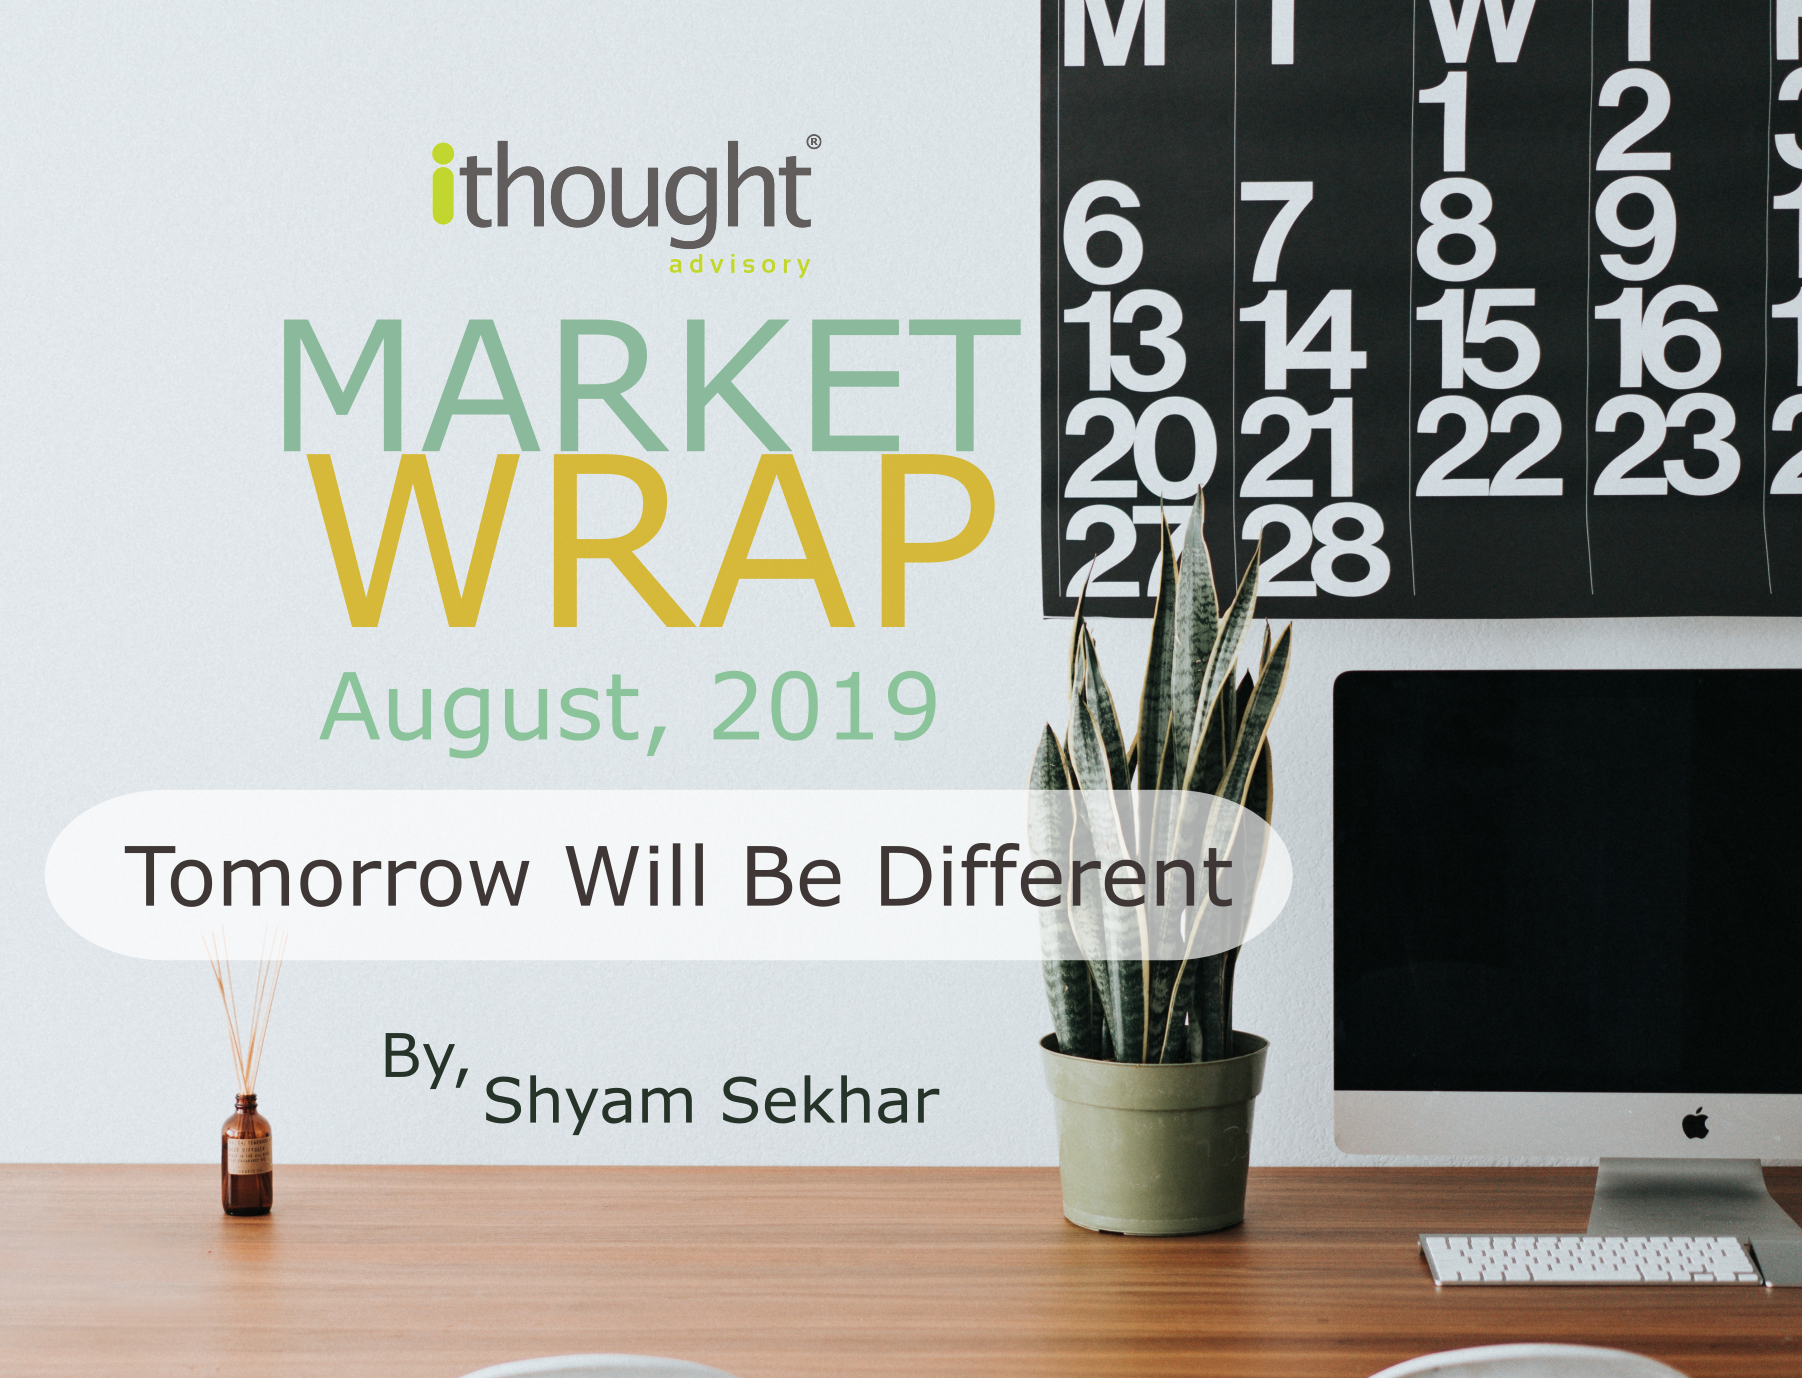 tomorrow-will-be-different-ithought-shyam-sekhar